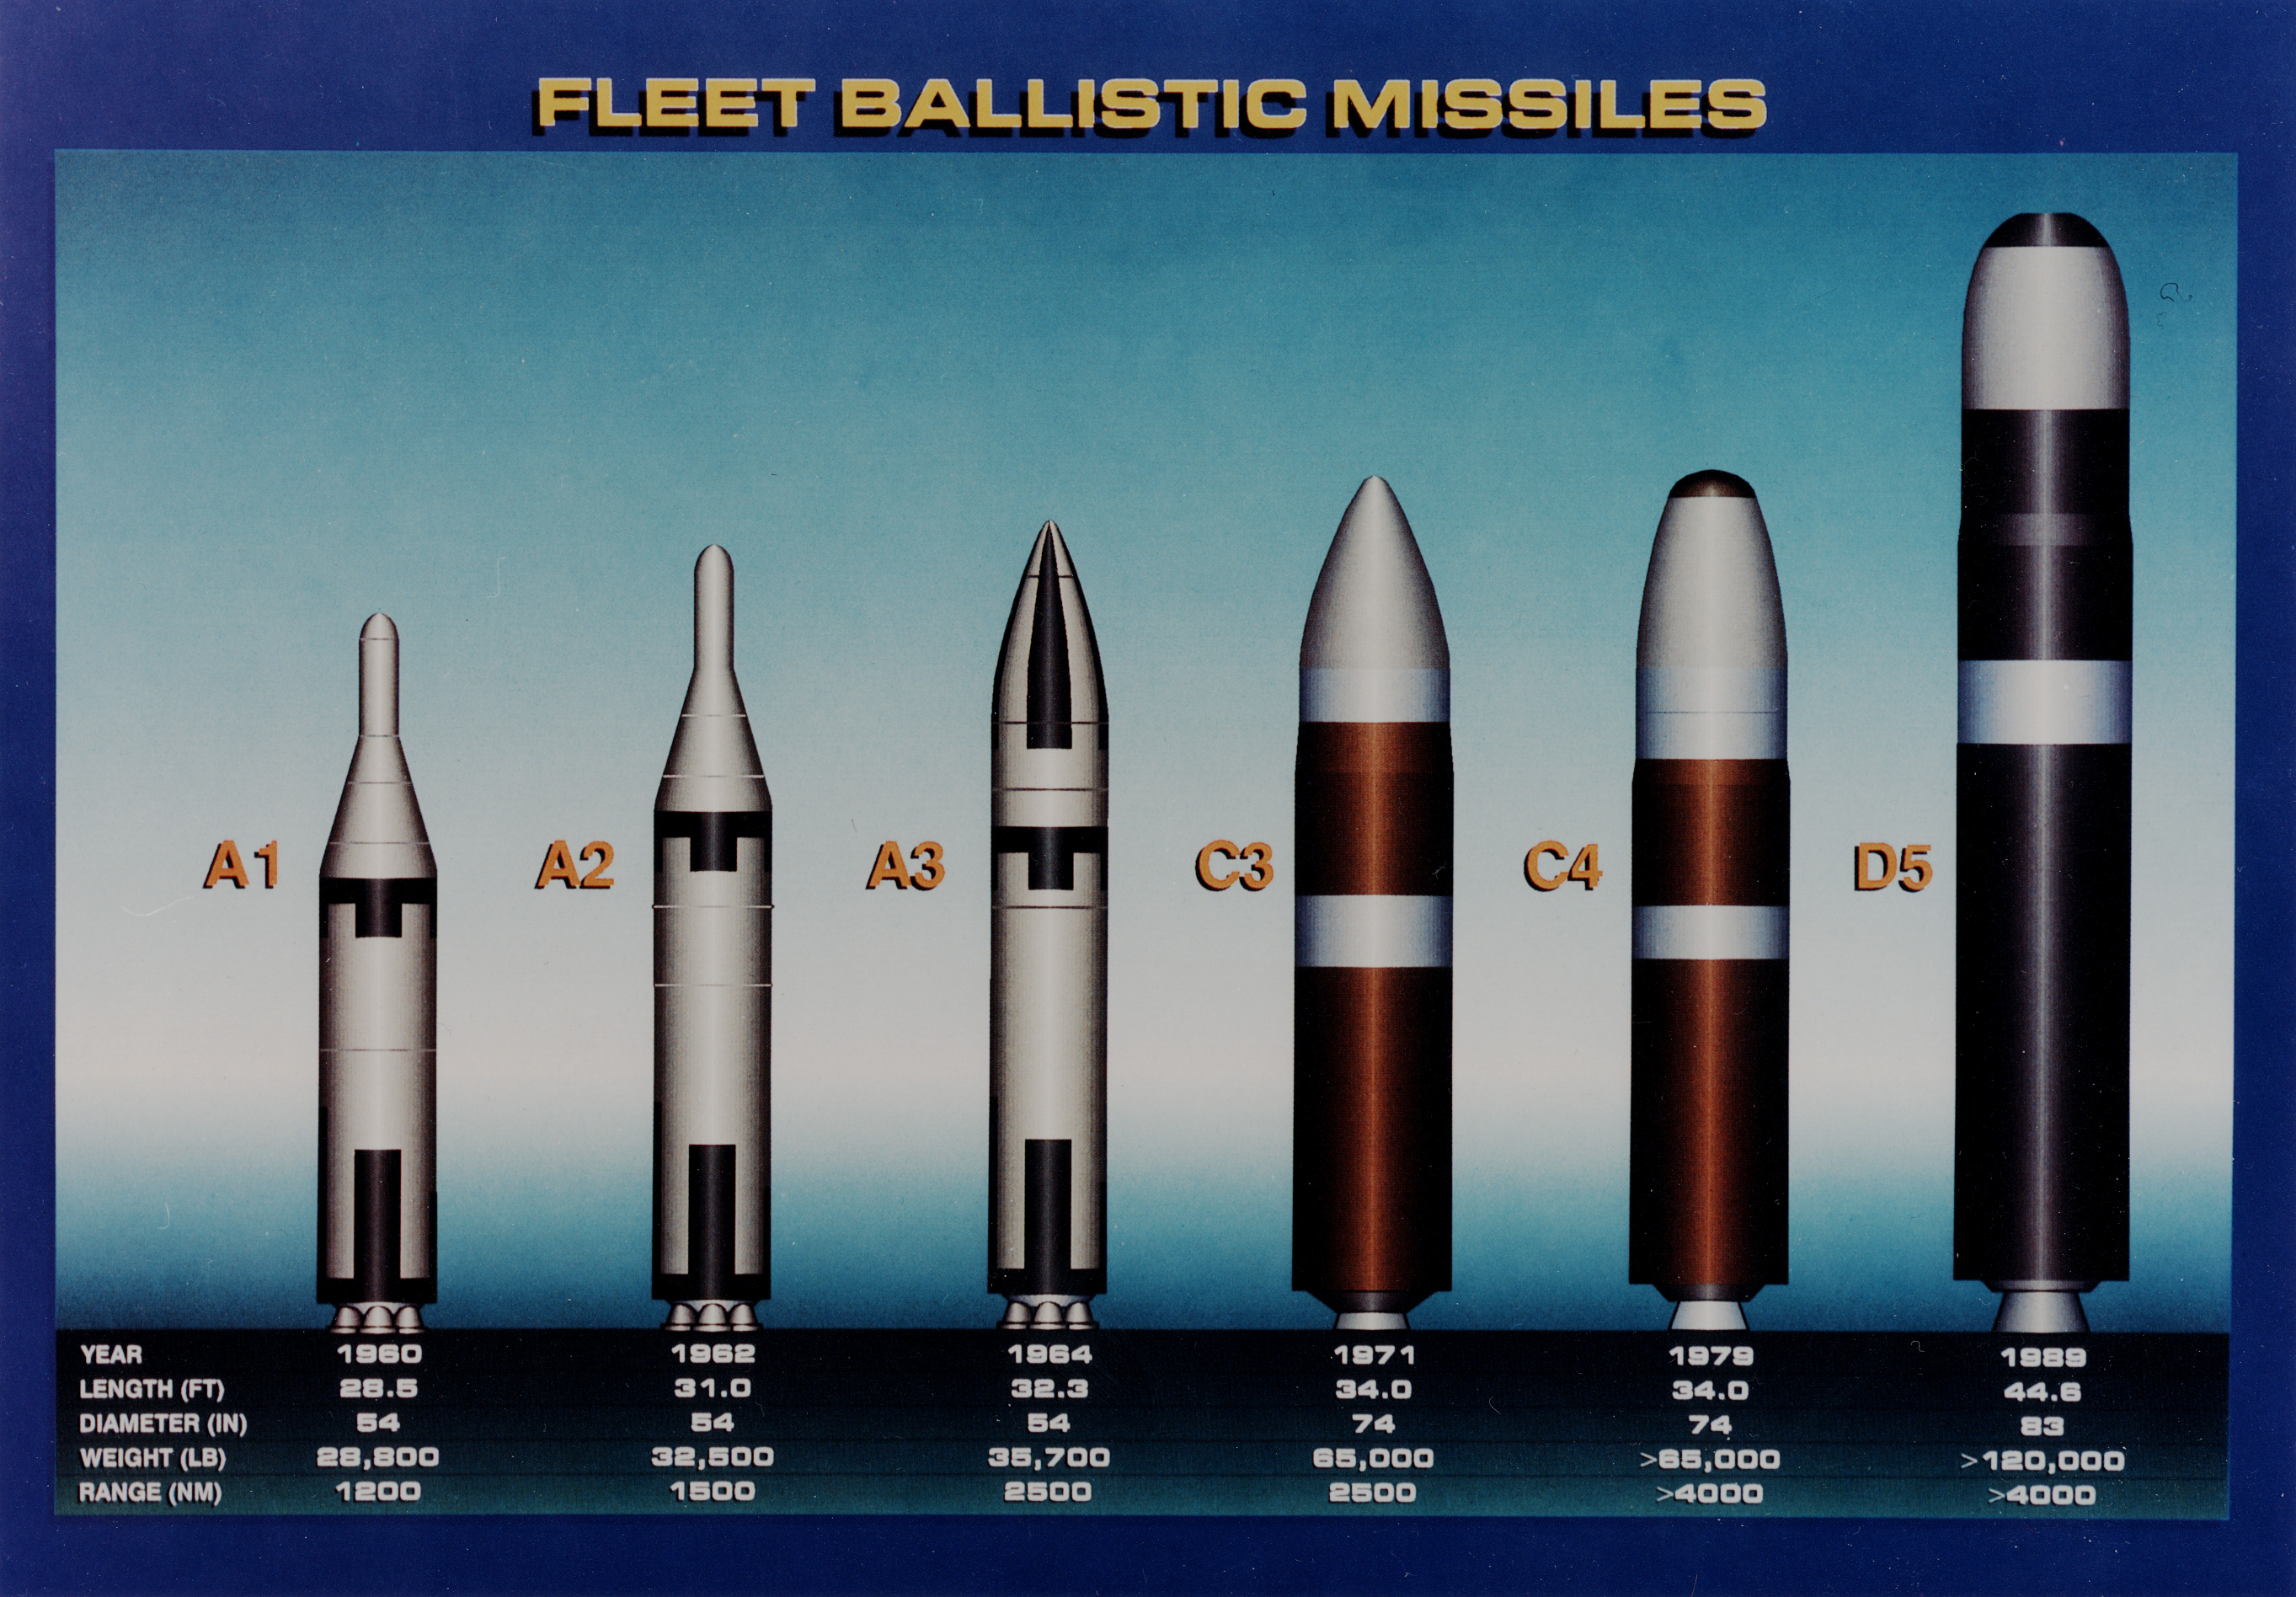 Military Nuclear Wallpaper 2726x1896 Military Nuclear Weapons Navy 2726x1896